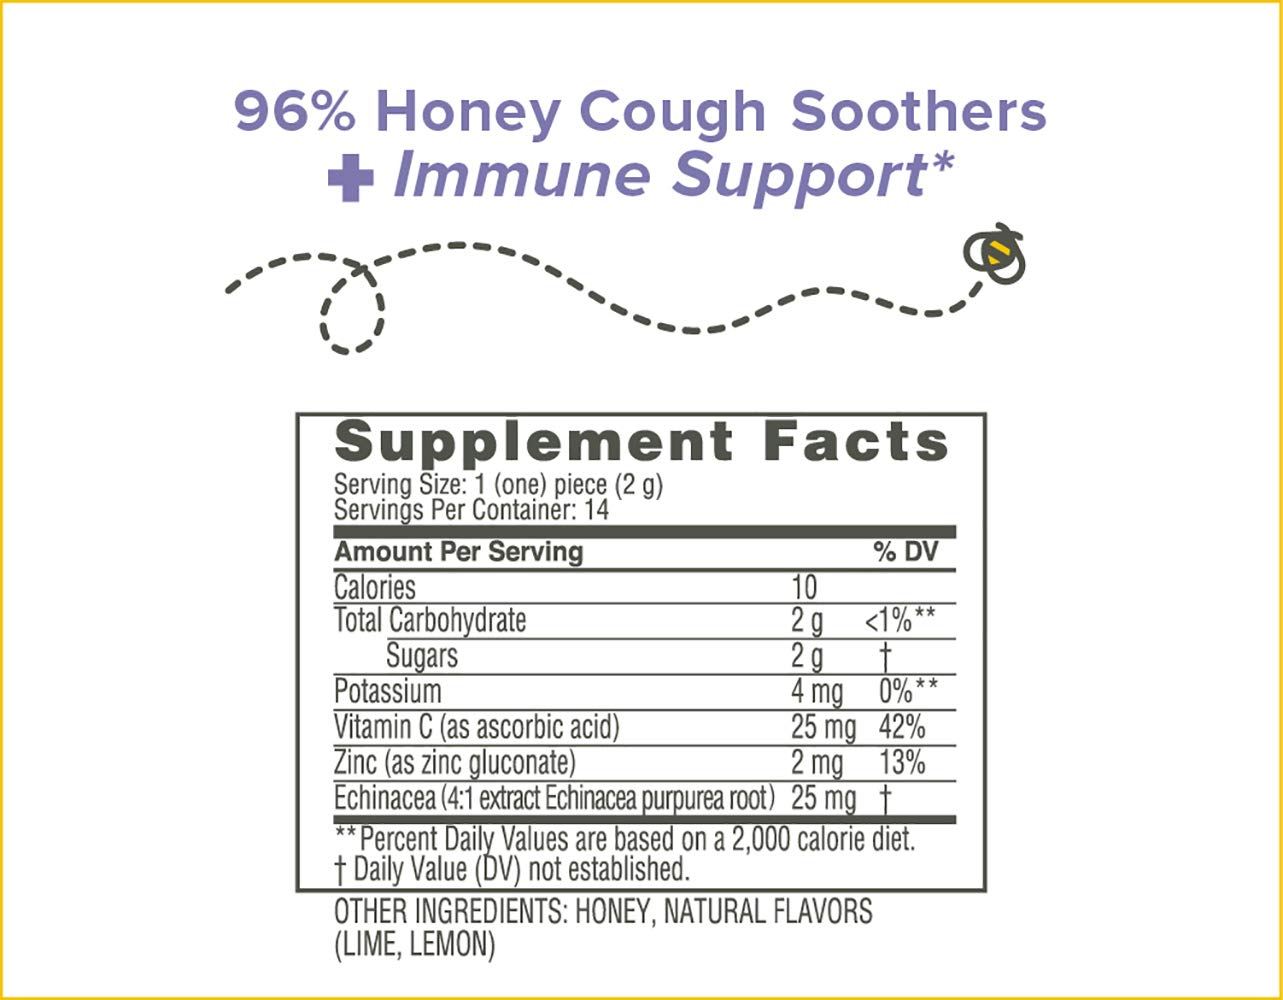 Zarbees Naturals 96% Honey Cough Soother + Immune Support* & 96% Honey Cough Soother + Mucus 28Count (Pack of 2) Simply Made with Honey & Natural ...